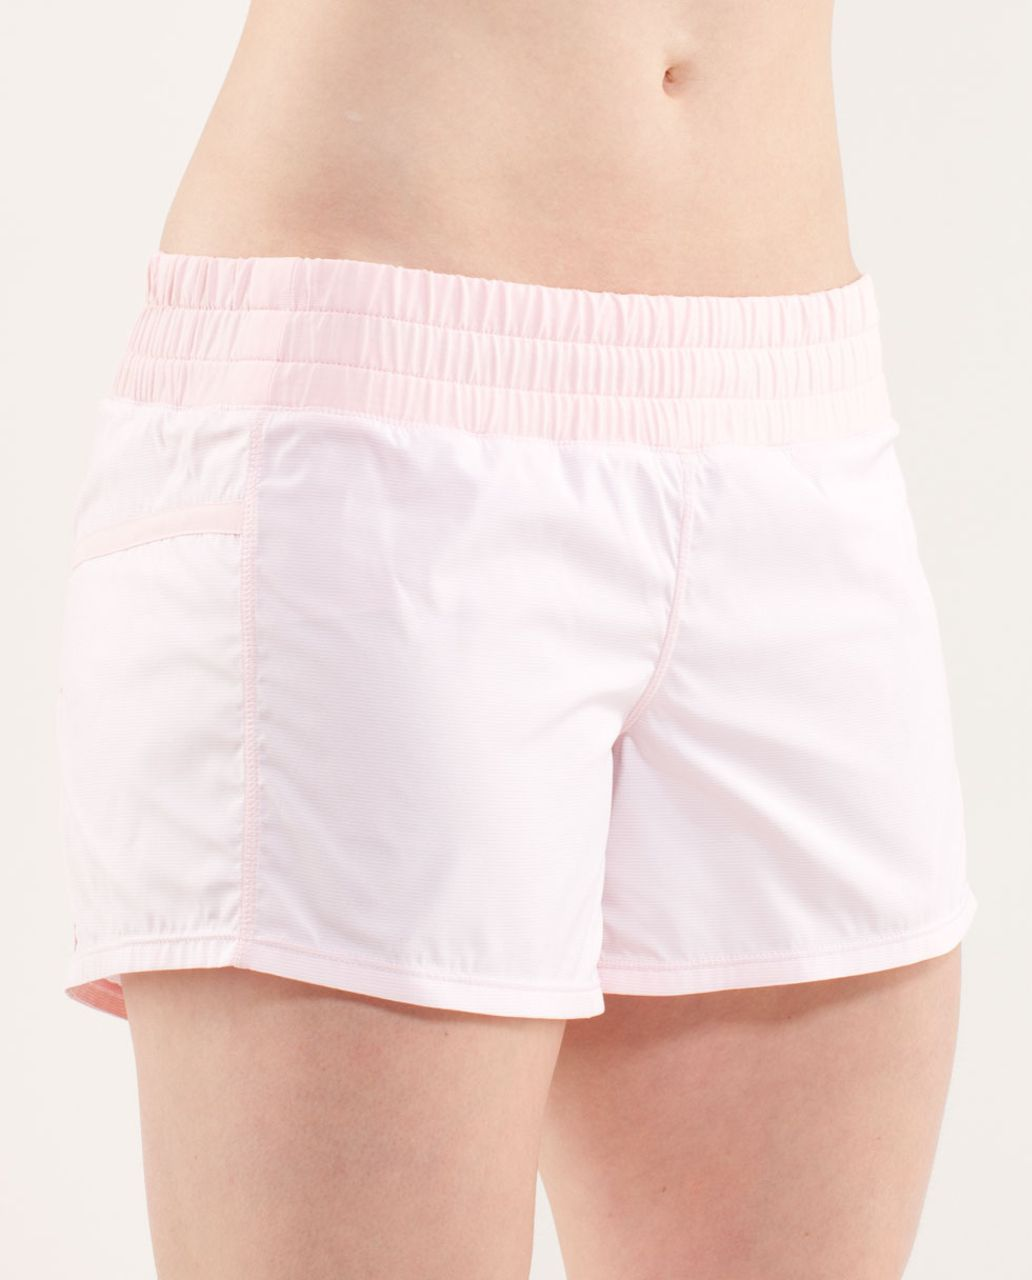 Lululemon Run:  Tracker Short II - Wee Stripe White Blush Quartz /  Blush Quartz